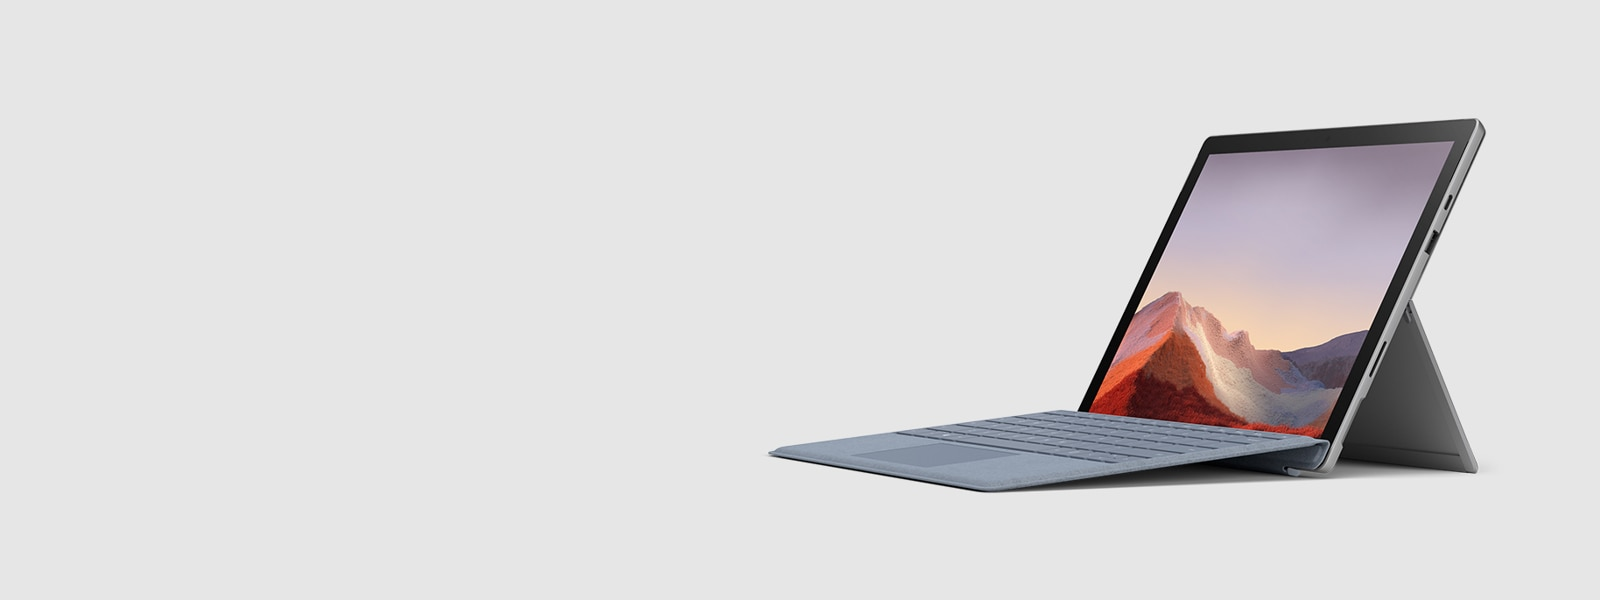 A Surface Pro 7 with a type cover.